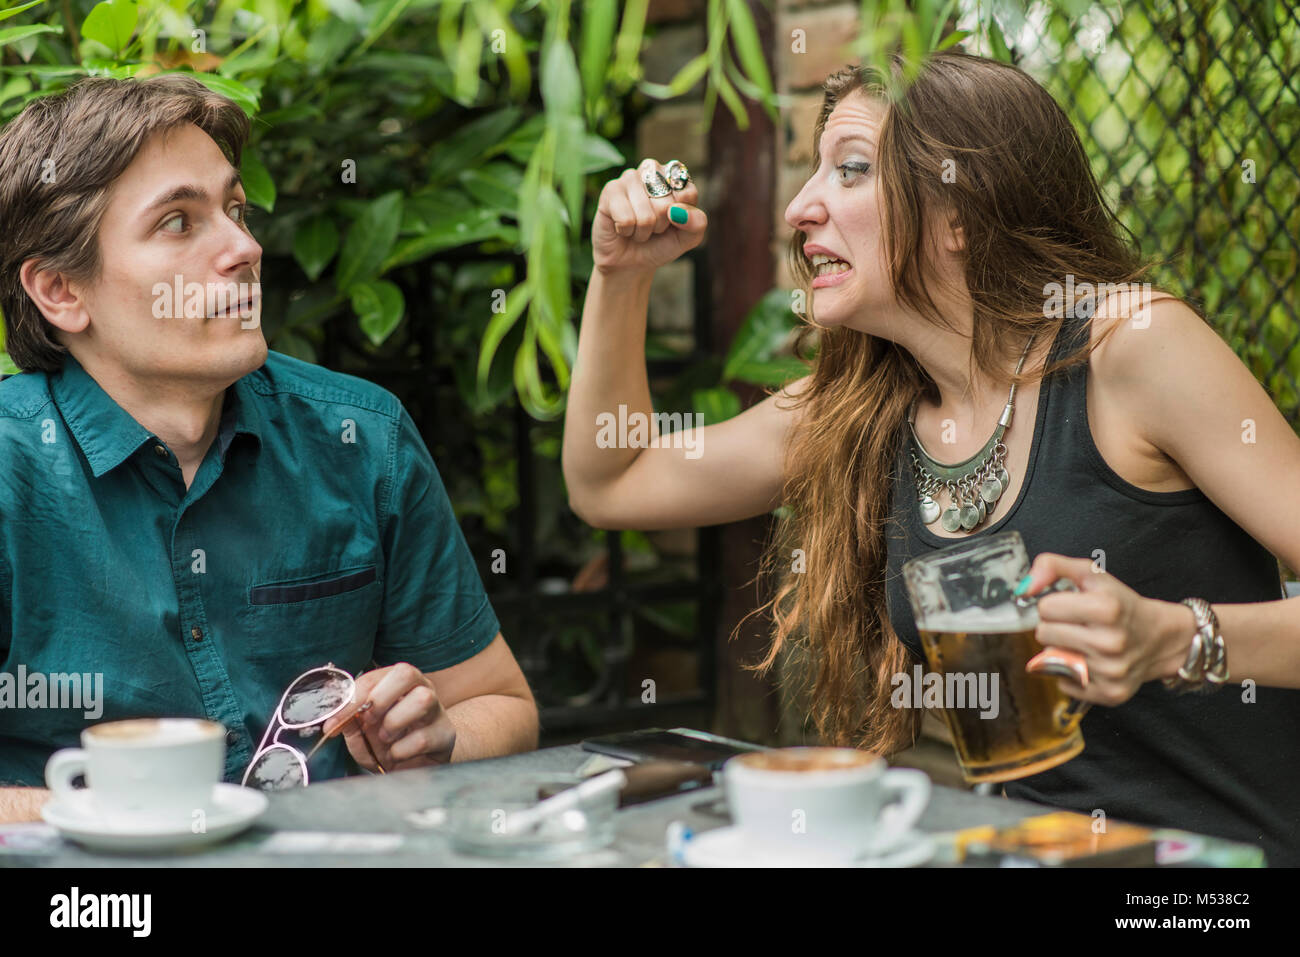 Angry girlfriend about to punch her boyfriend - Stock Image